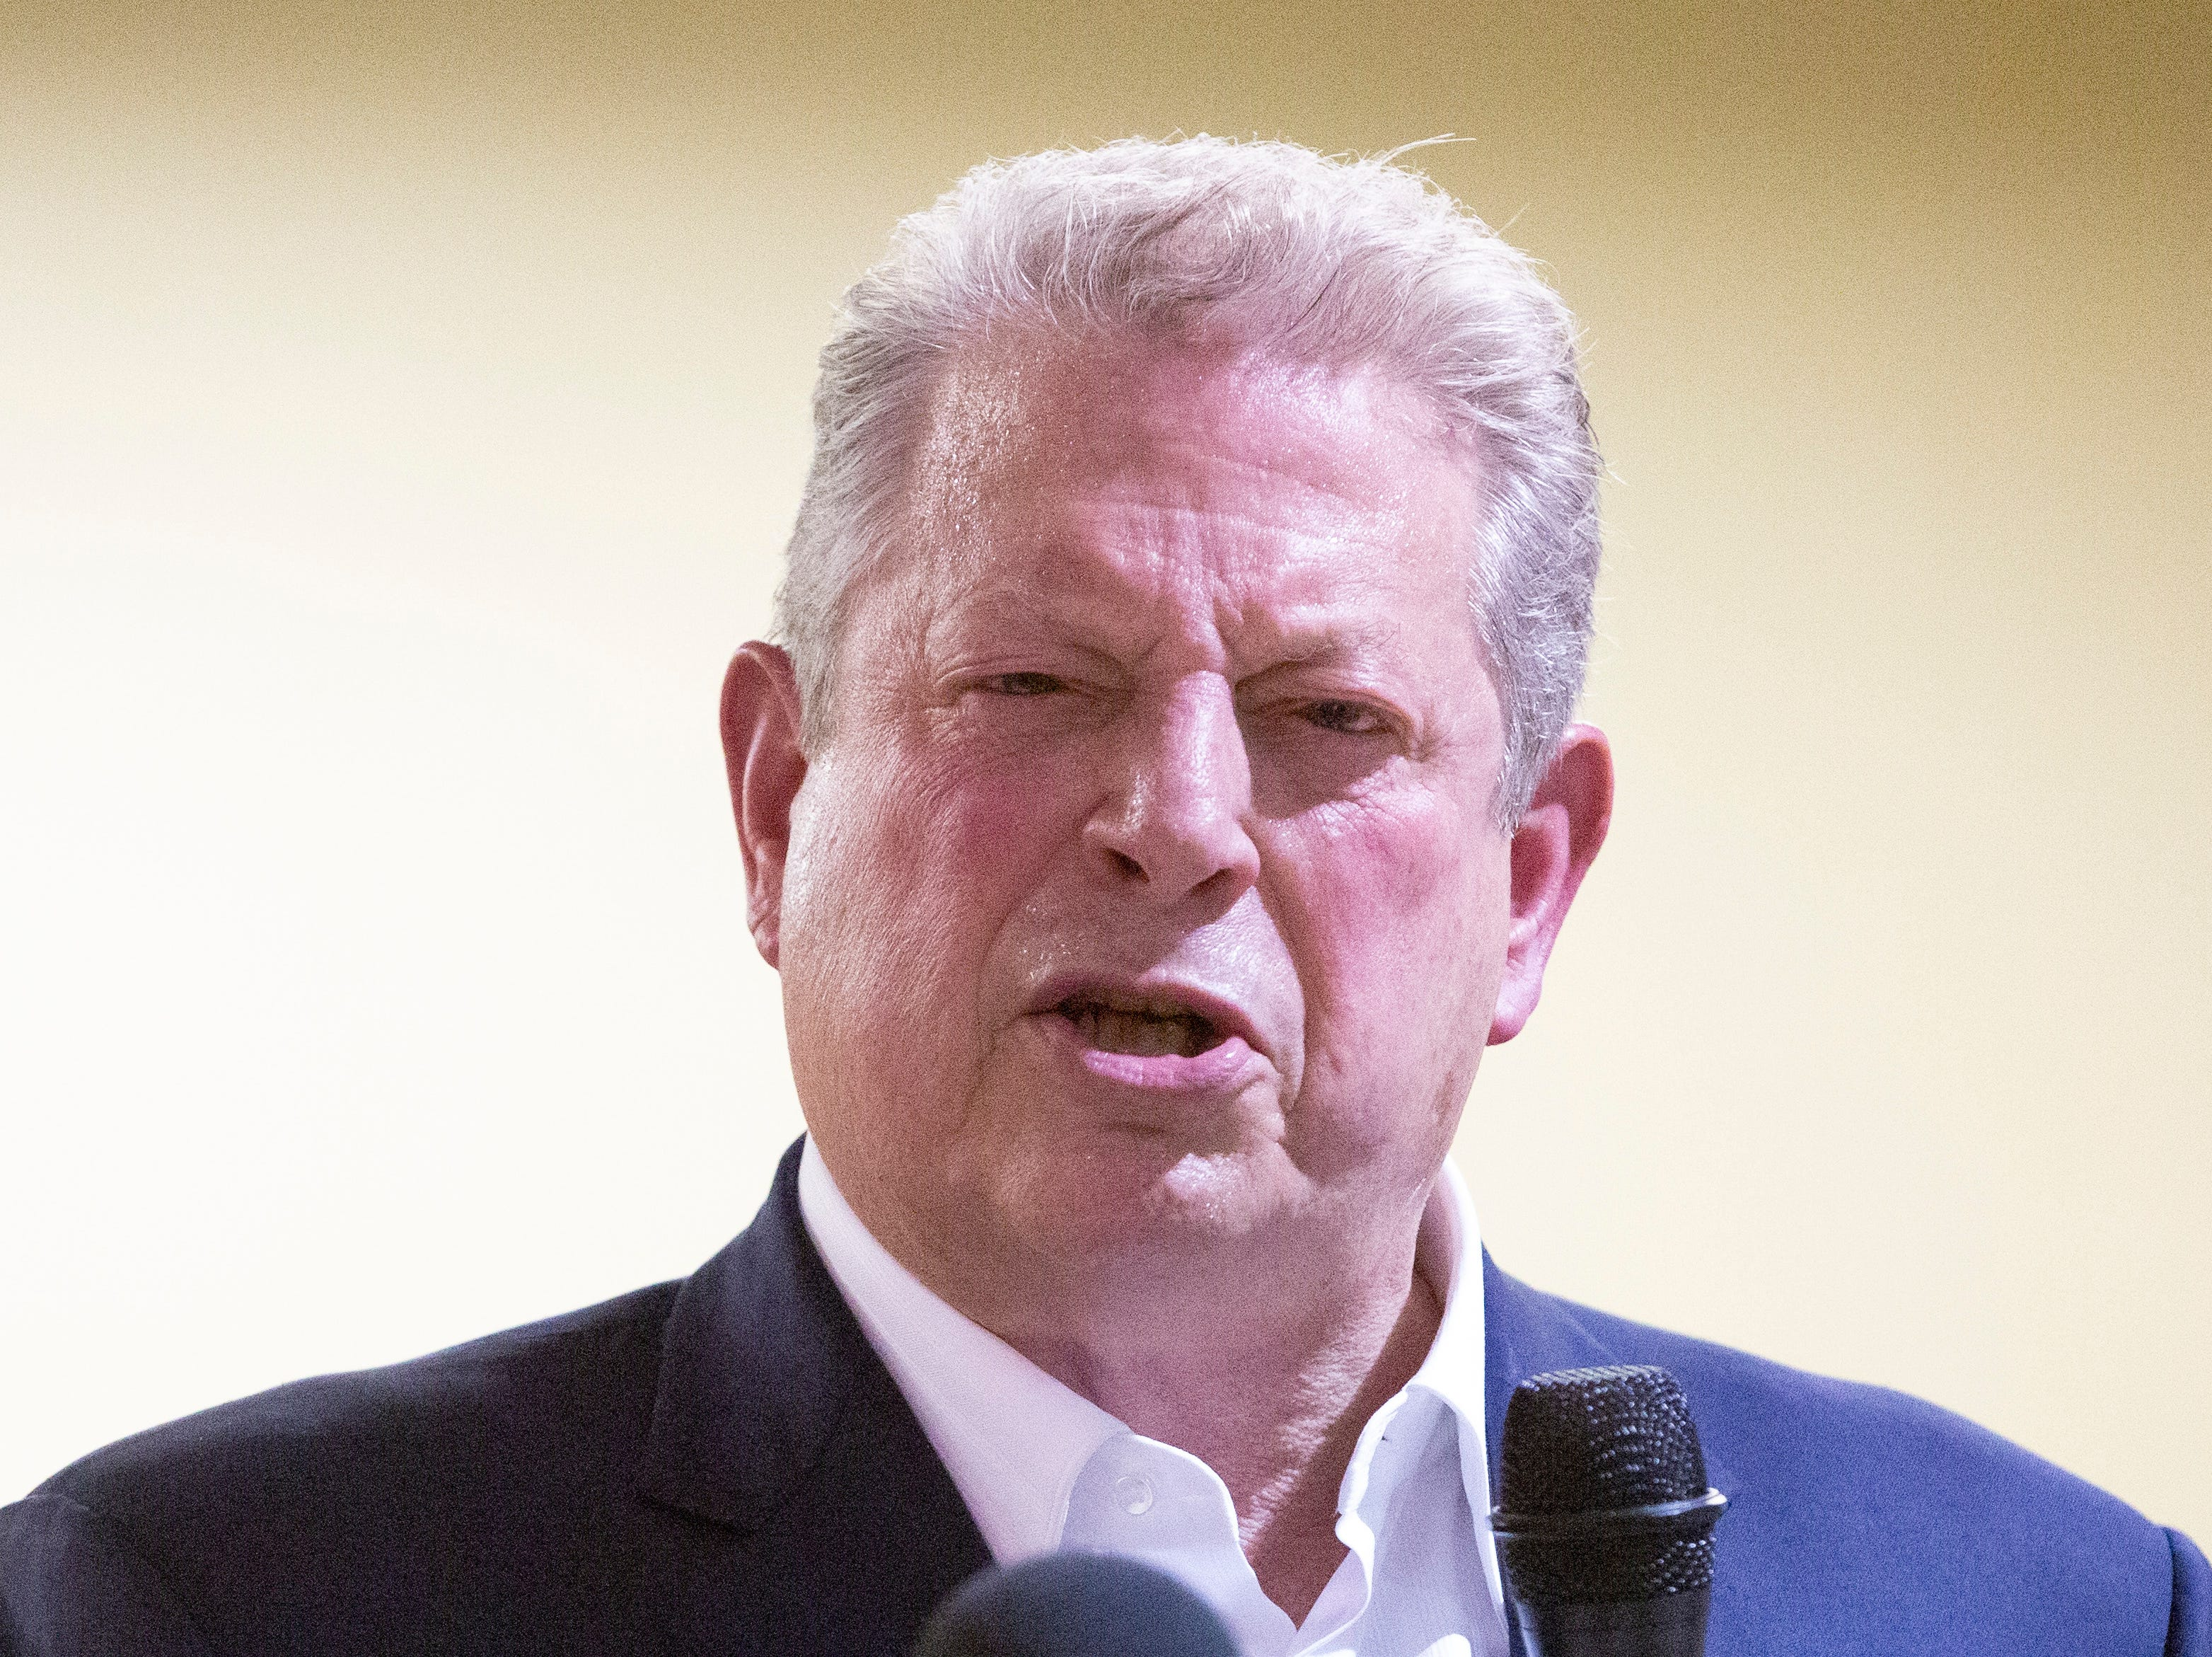 Former Vice President Al Gore rants against environmental injustices, to include inadequate wastewater infrastructure in Lowndes County, during a town hall style meeting at the Jackson-Steele Community Center.